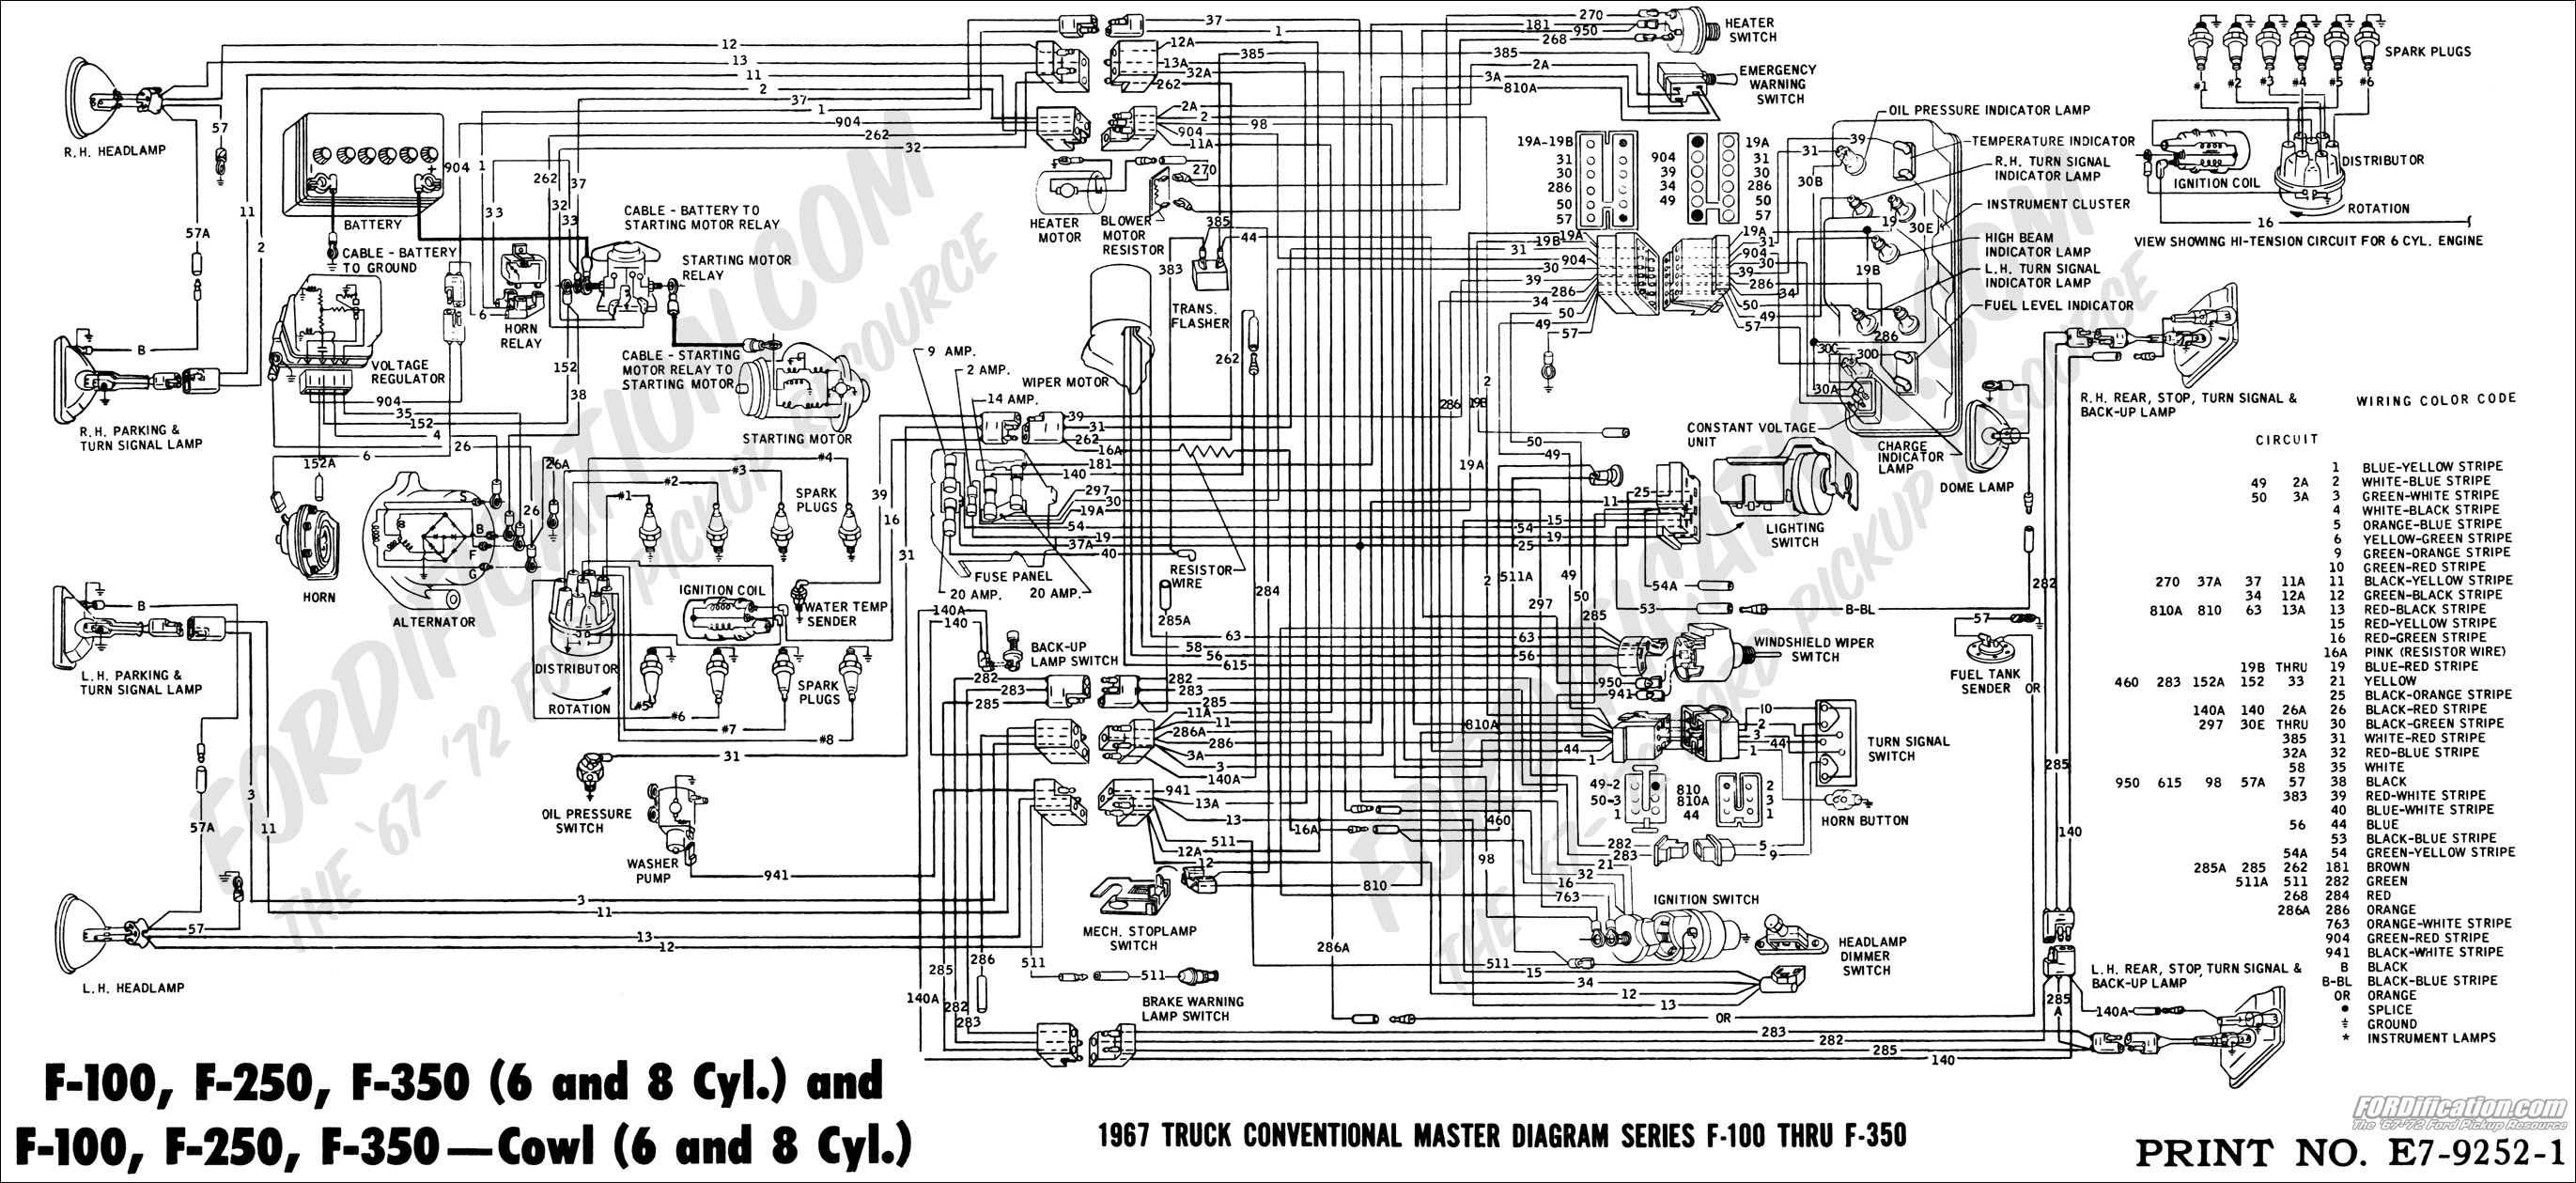 Ford Harness Diagram Completed Wiring Diagrams 1964 F100 91 F 150 Schema Galaxie 1991